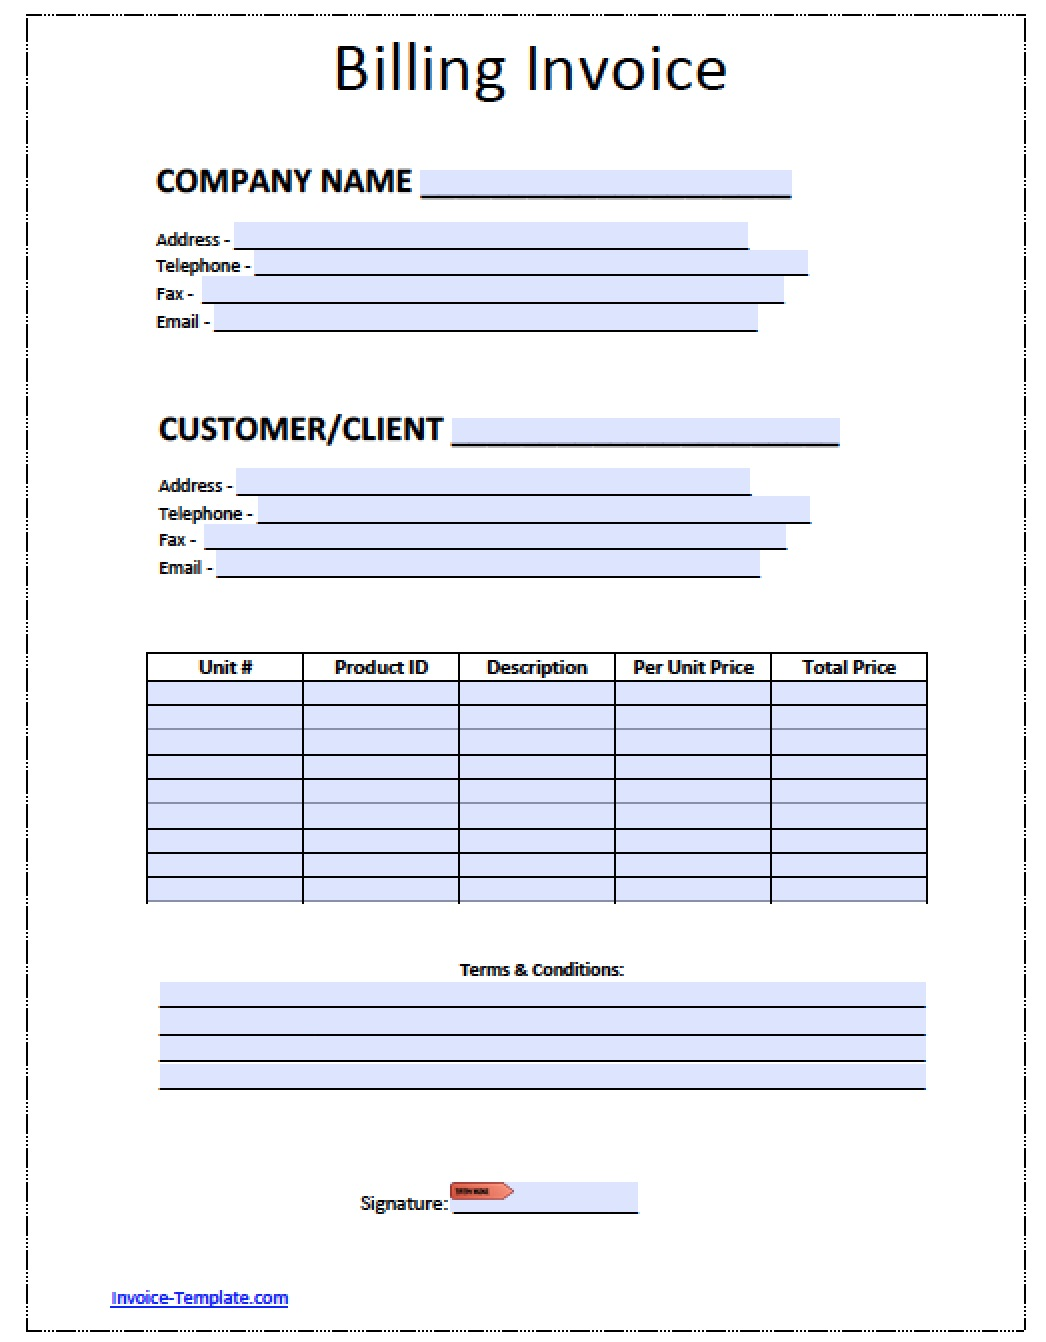 Free Billing Invoice Template Excel PDF – Sample of Invoice Bill